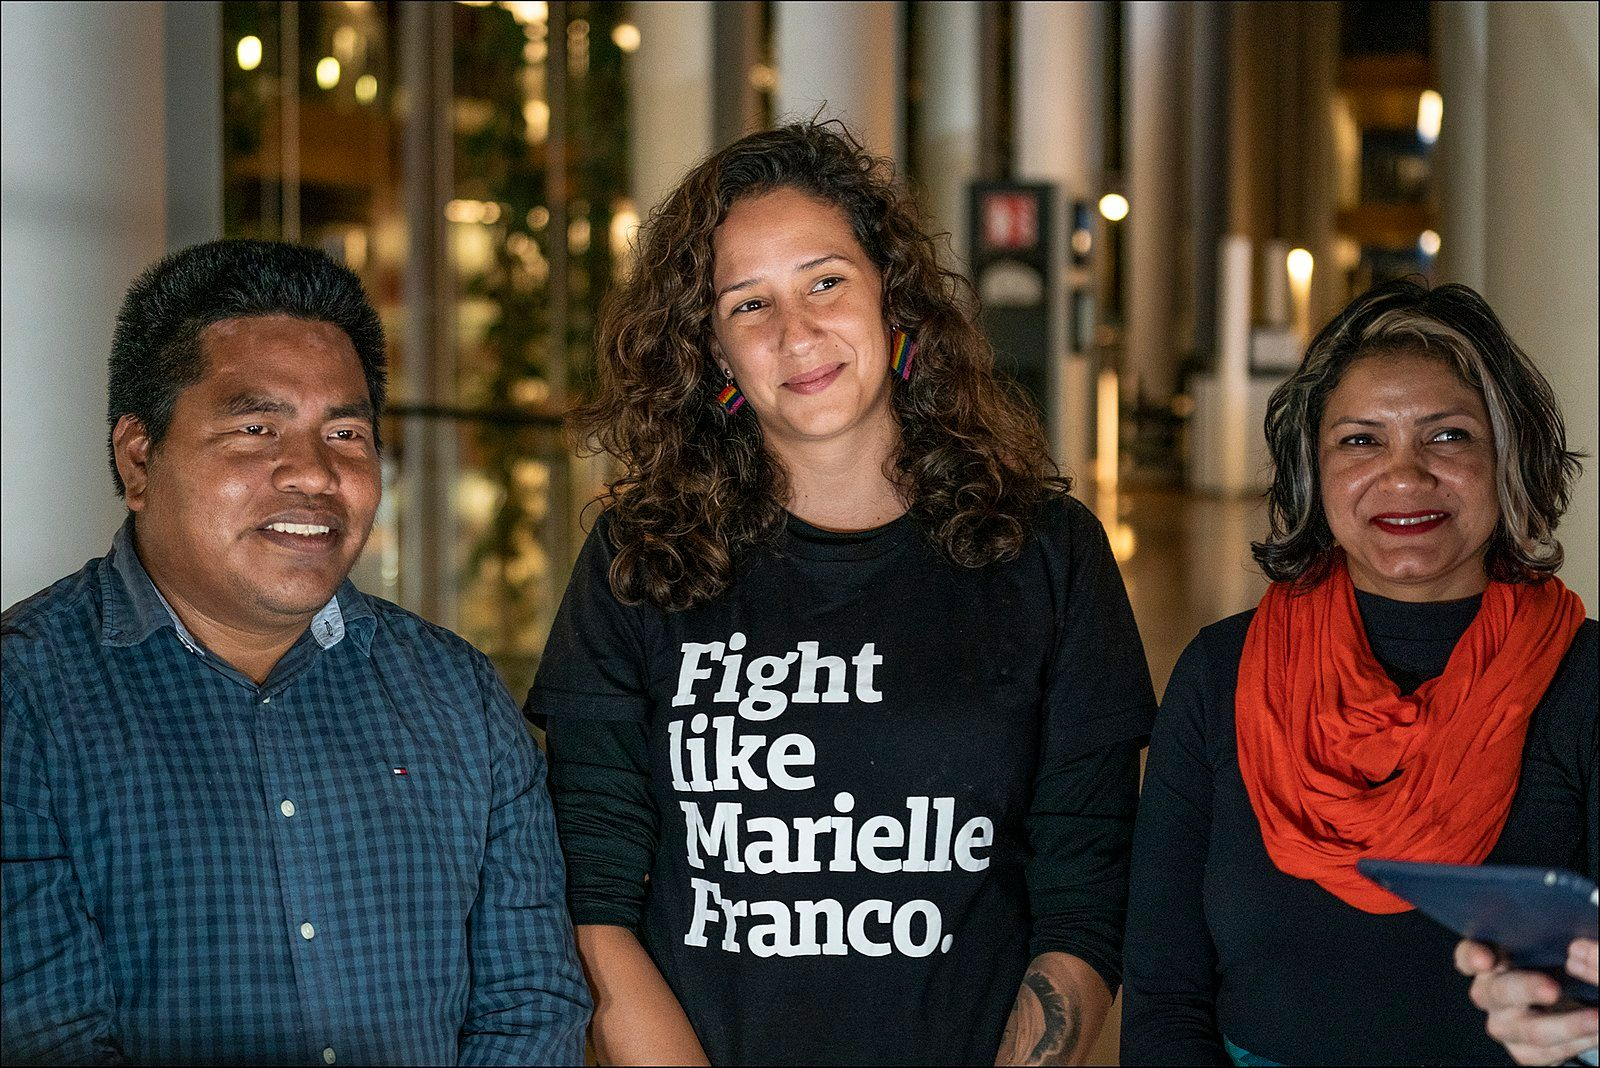 Honoring Human Rights Defenders and Their Fight for Justice